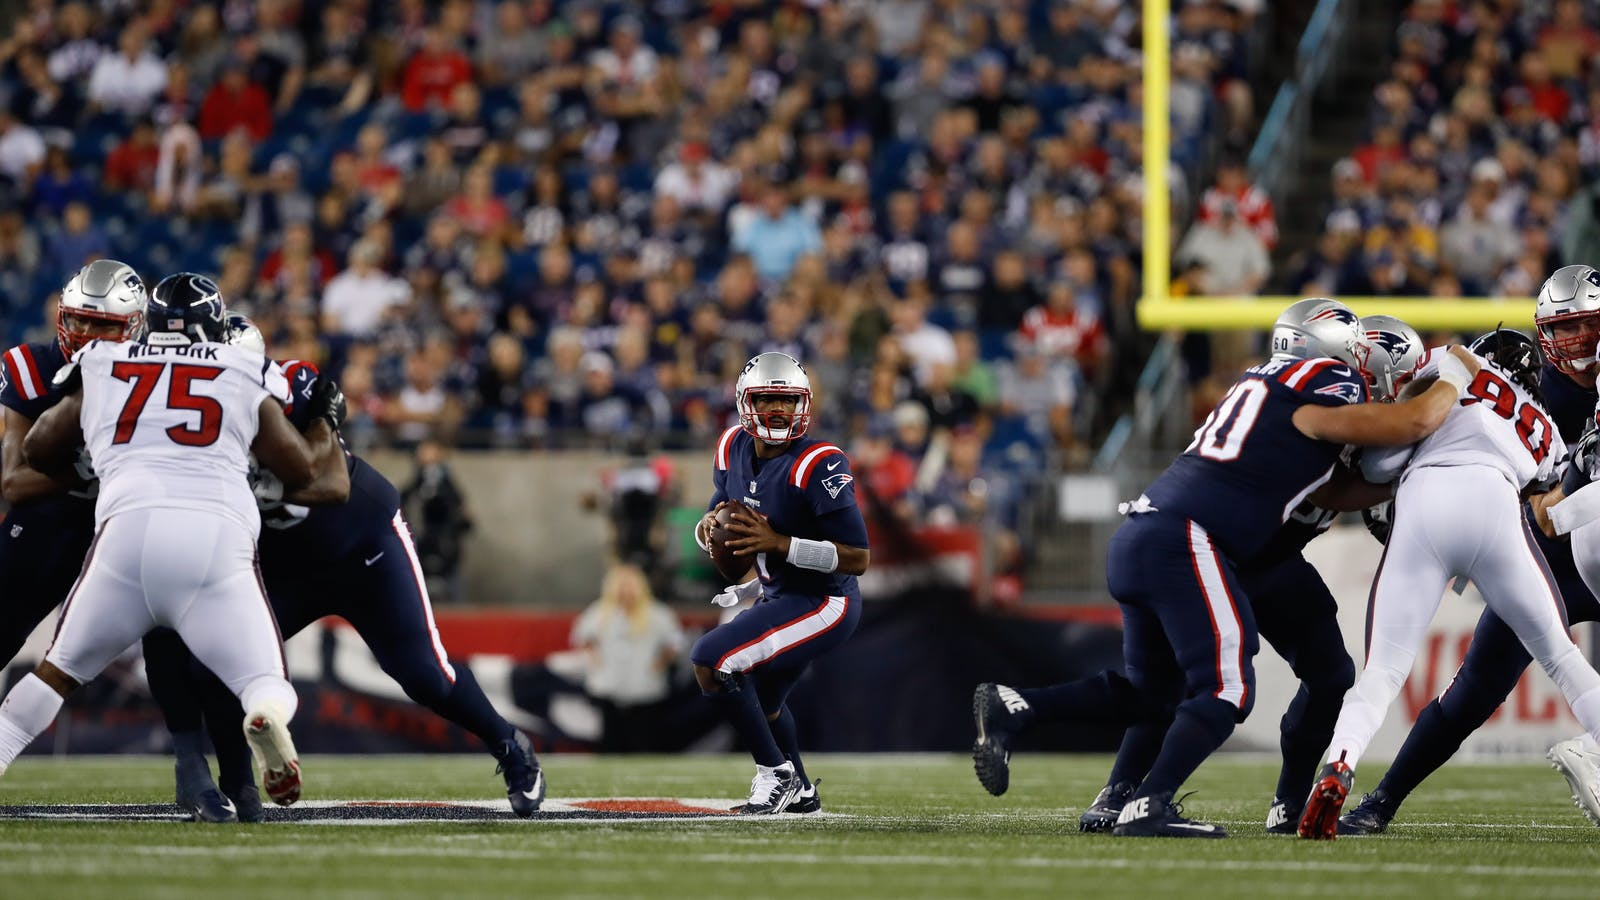 New England Patriots playing Houston Texans on Sept. 22, a game streamed on Twitter. Photo by AP.